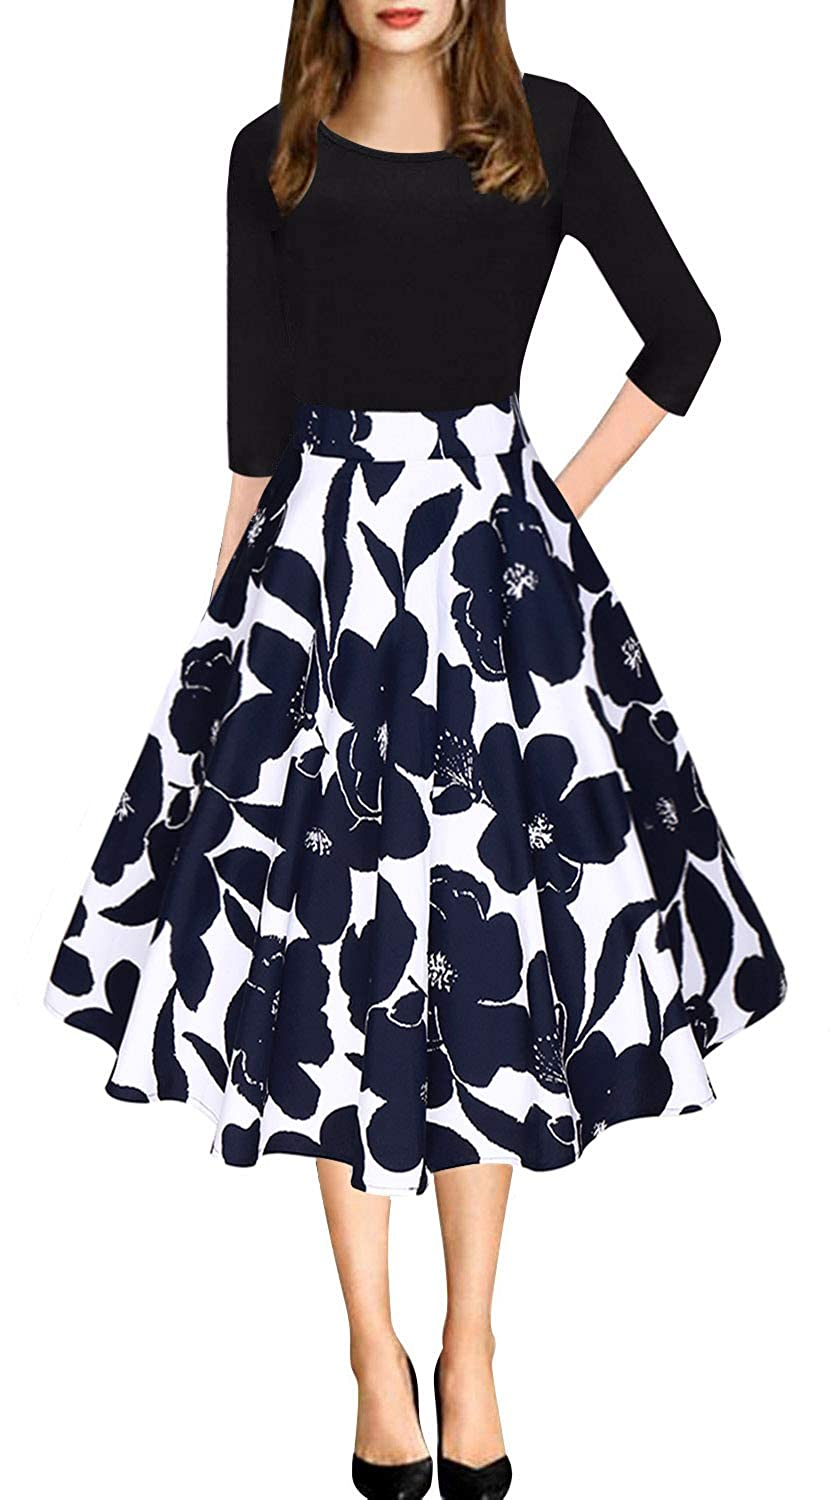 bluee Floral Women's Vintage Patchwork Pleated ALine Swing Casual Party Dress